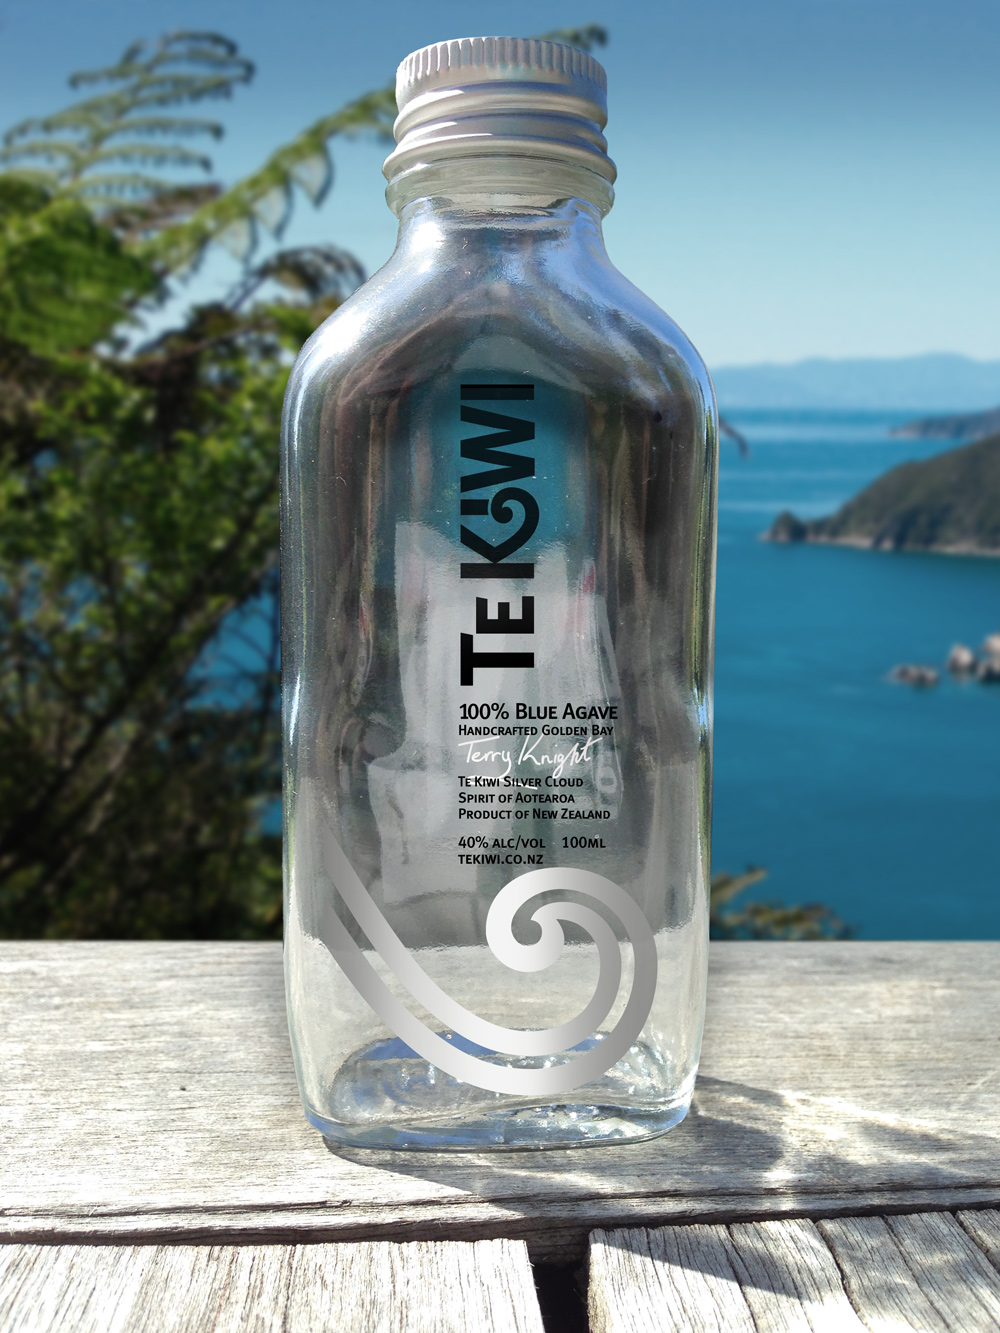 100ml sample bottle label, Te Kiwi Silver Cloud 100% Blue Agave, cultivated and small batch distilled in Golden Bay. Spirit of Aotearoa, Product of New Zealand. 40% Alc/Vol, 100 ml, www.tekiwi.co.nz. Sample bottles of TeKiwi are a useful sales and marketing premium in ongoing marketing and promotional efforts.